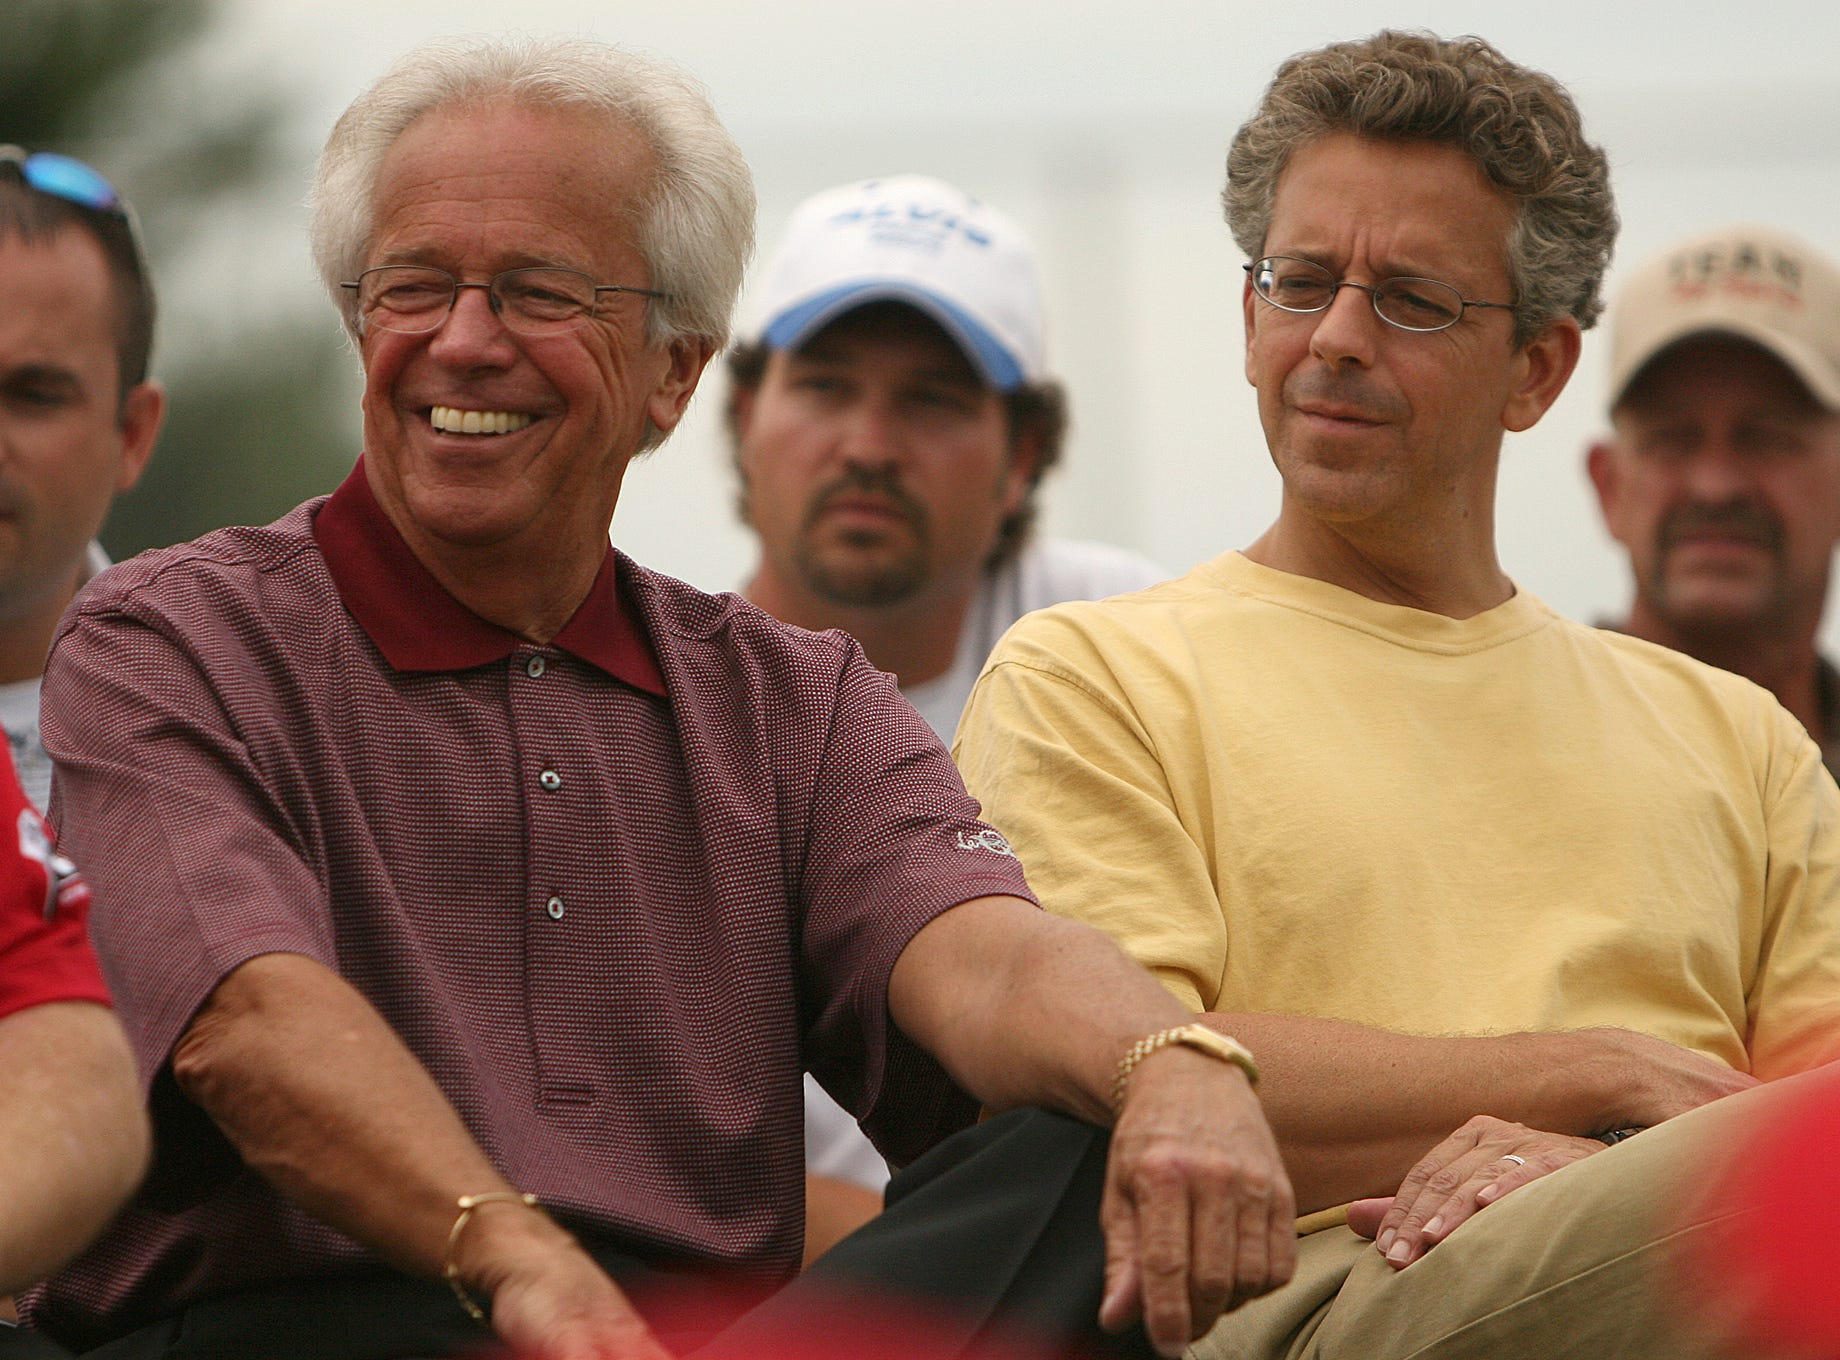 Friday, July 25, 2008: Hometown/ SE/ Anderson Twp. Marty and Tom Brennaman listen during the Juilf's Park Marty Brennaman field dedication on Friday, July 25.